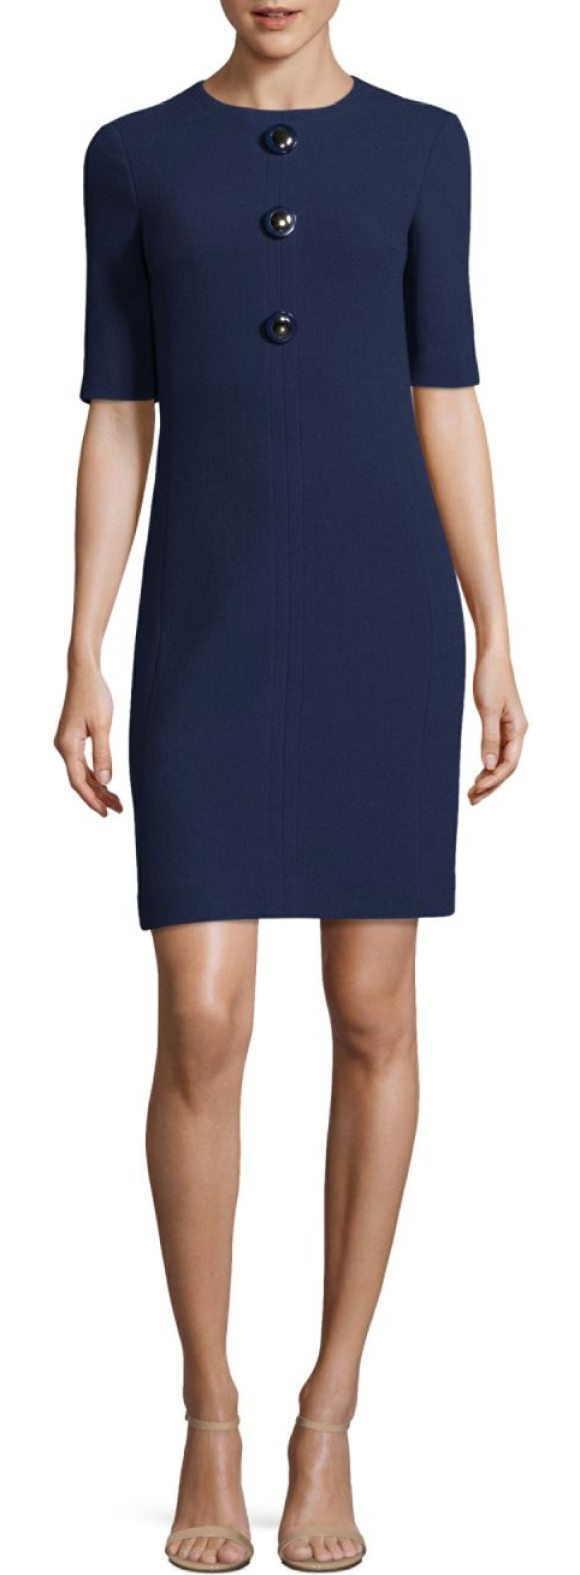 MICHAEL KORS COLLECTION stretch wool dress - Stretch wool dress accented with polished buttons....